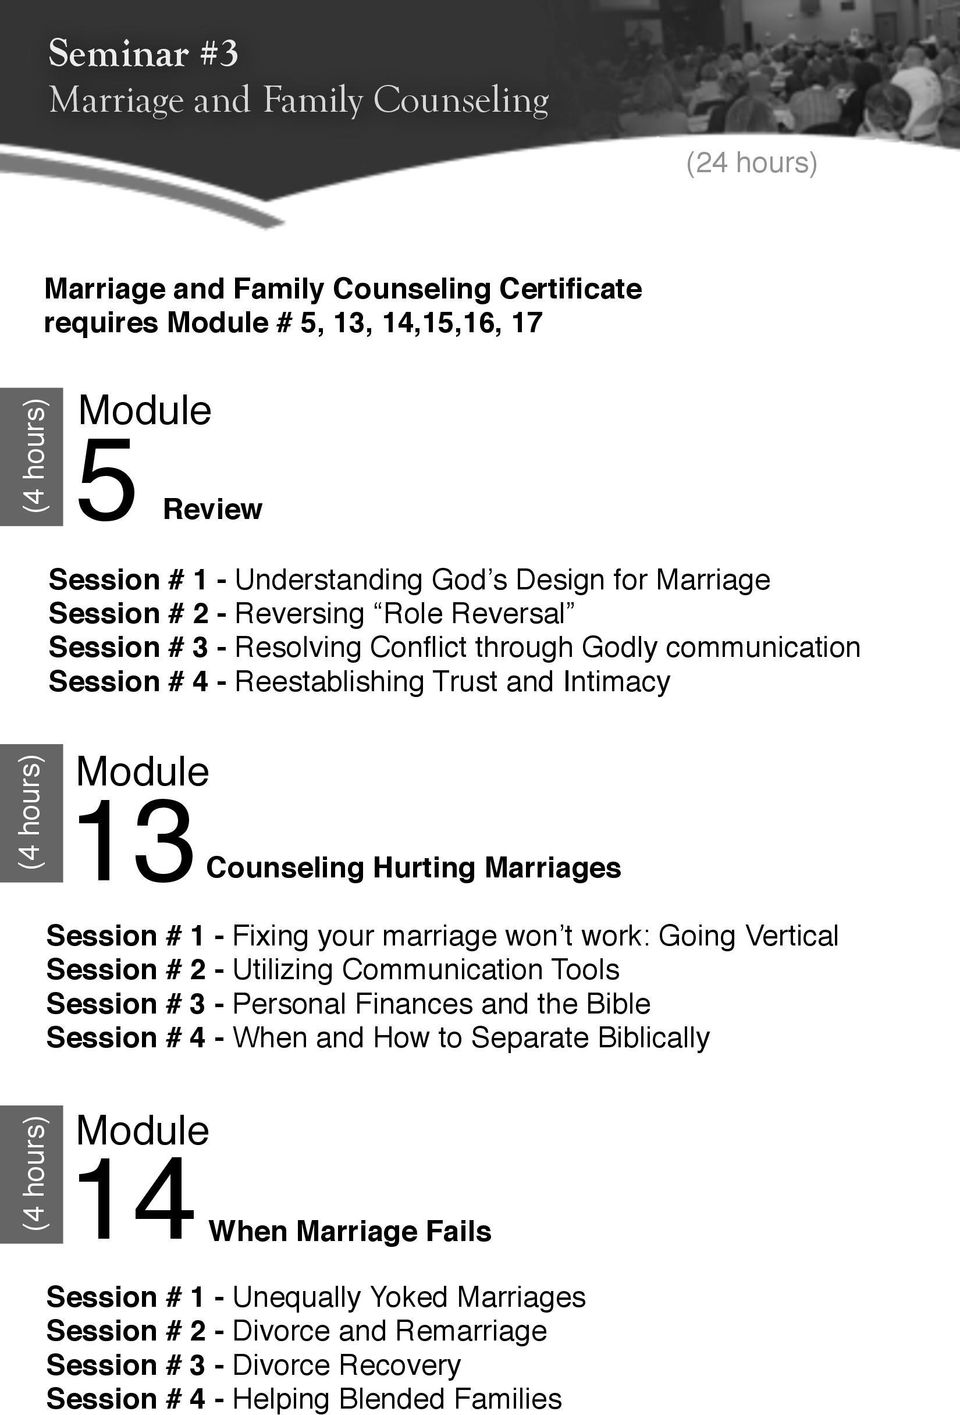 Marriages Session # 1 - Fixing your marriage won t work: Going Vertical Session # 2 - Utilizing Communication Tools Session # 3 - Personal Finances and the Bible Session # 4 - When and How to